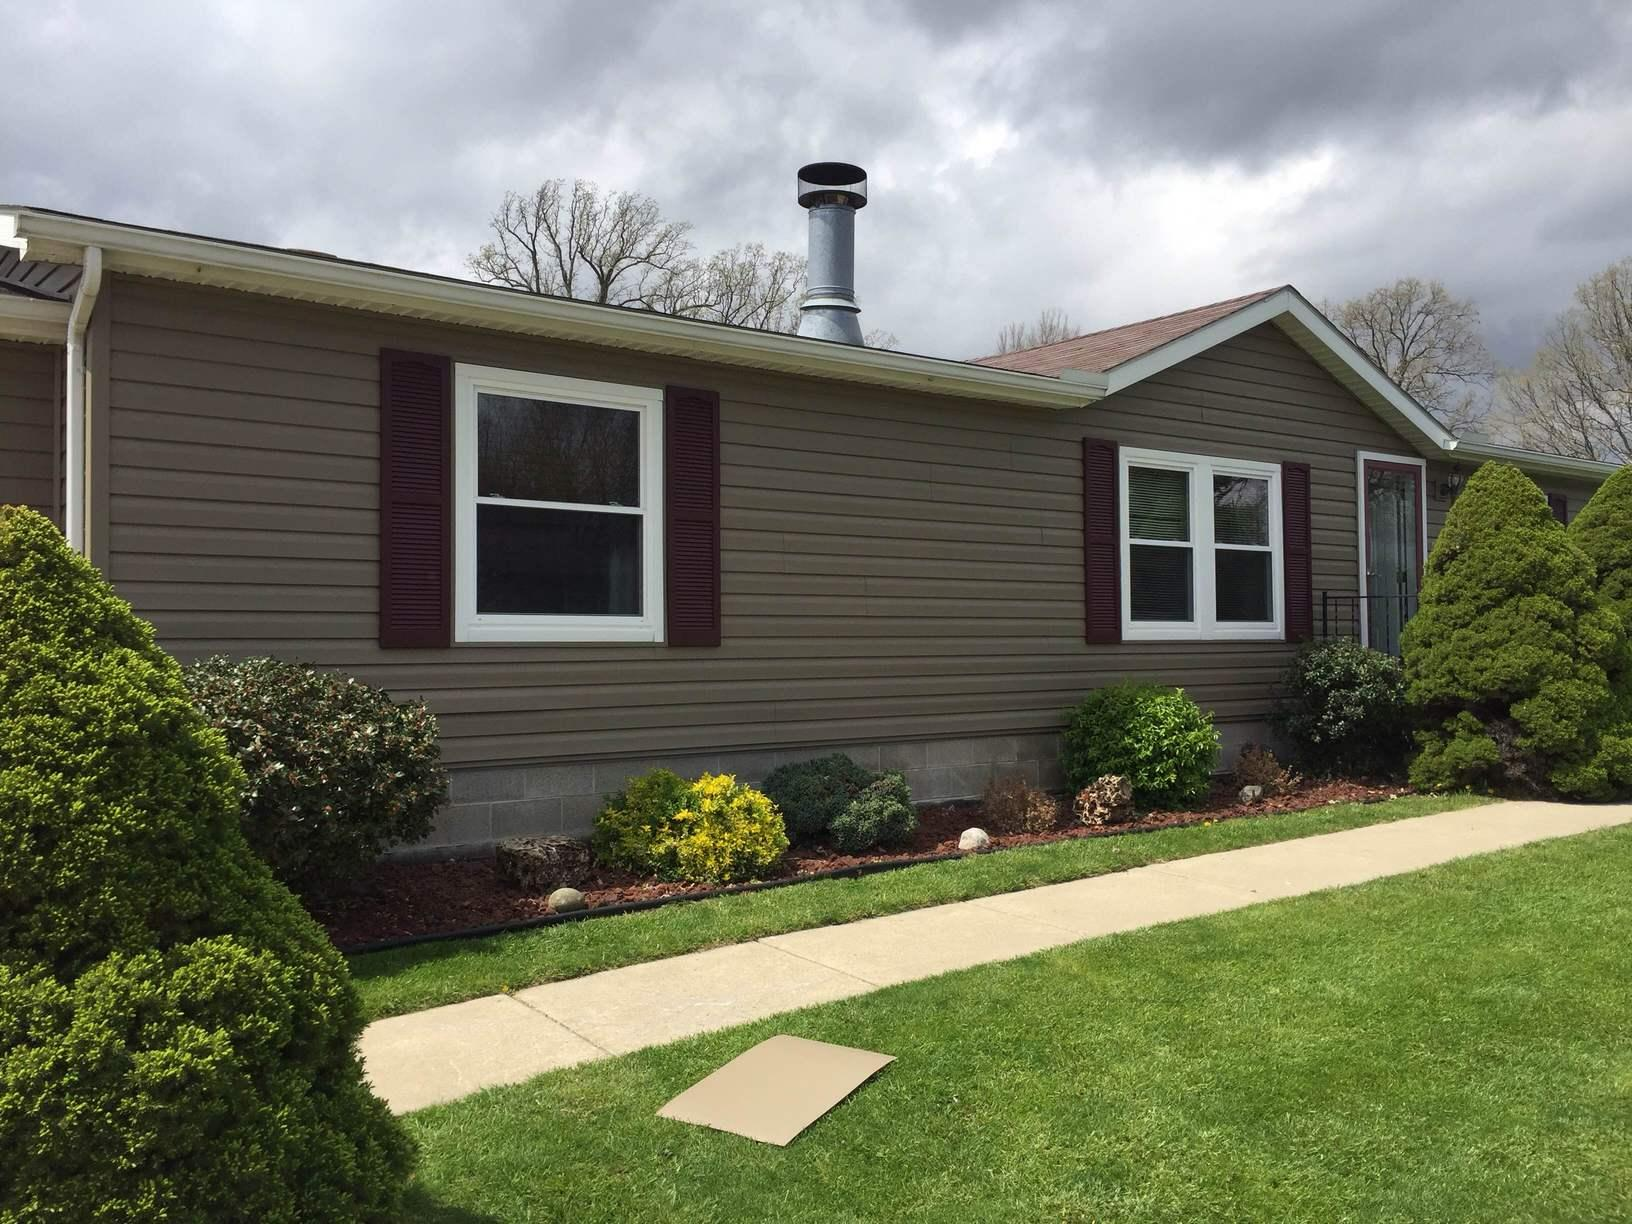 Siding Replacement in Newport, MI - After Photo